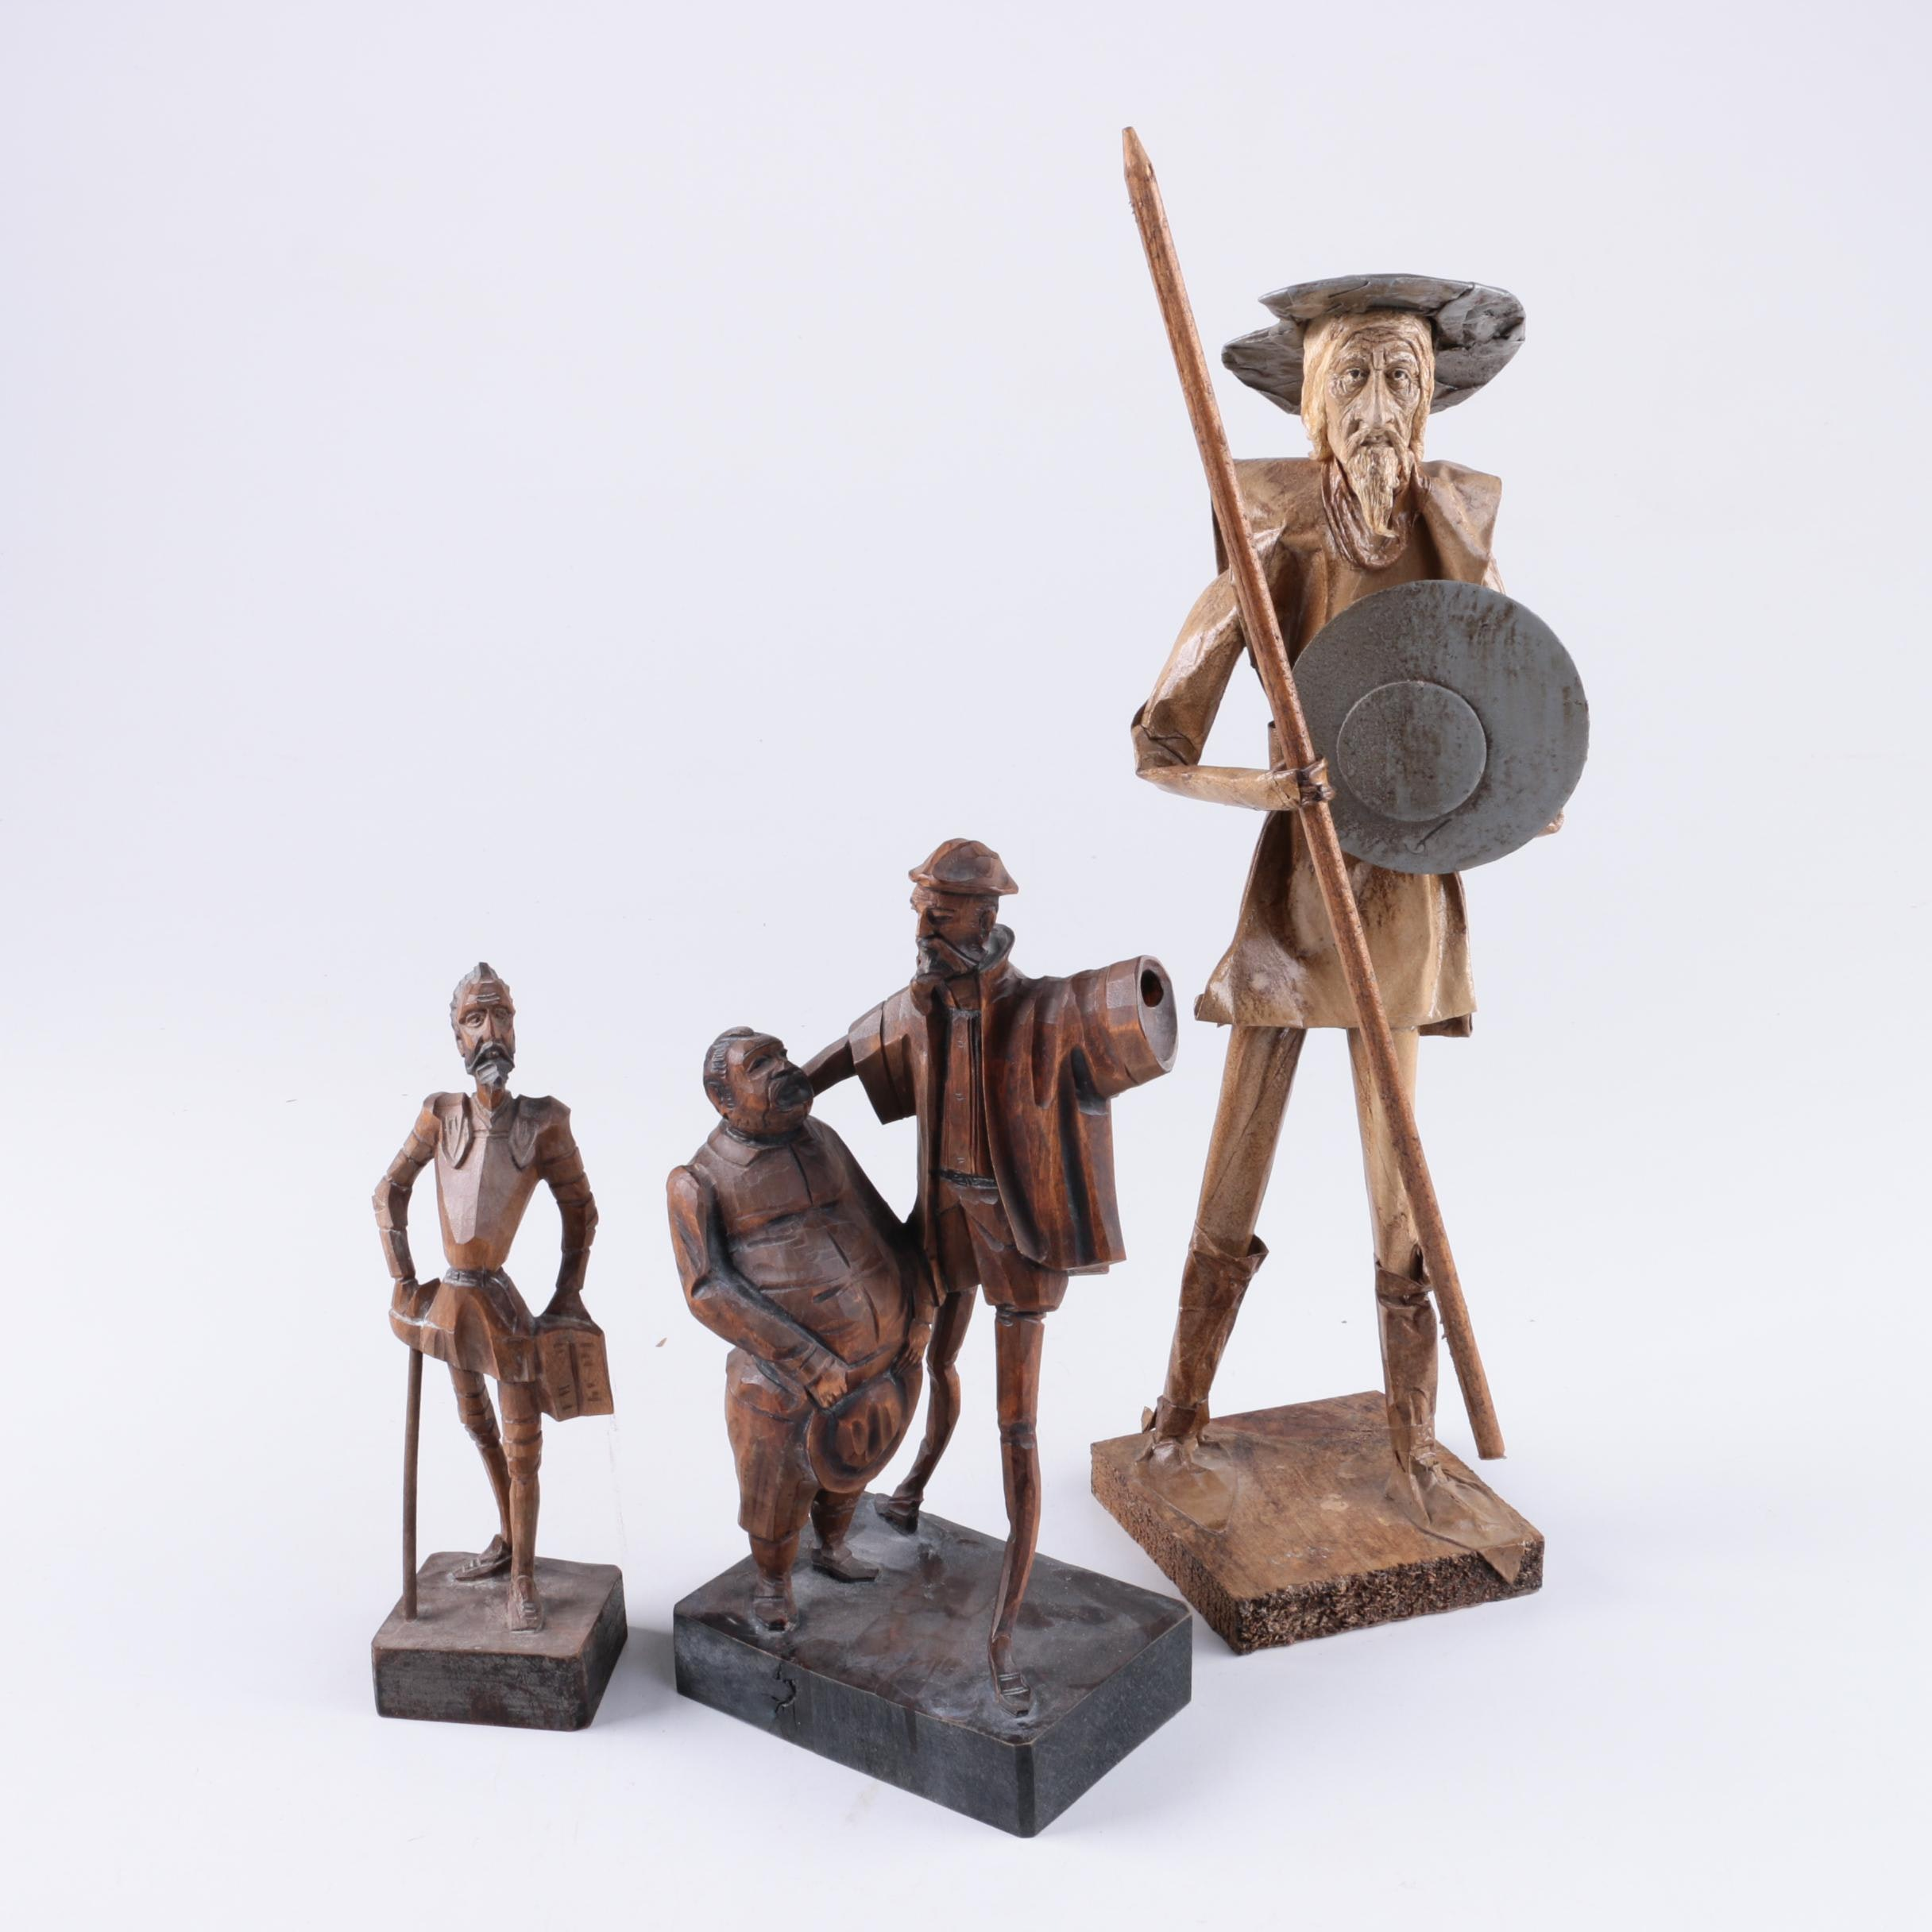 Hand-Carved Wooden Don Quixote Figures Featuring OURO Artesania